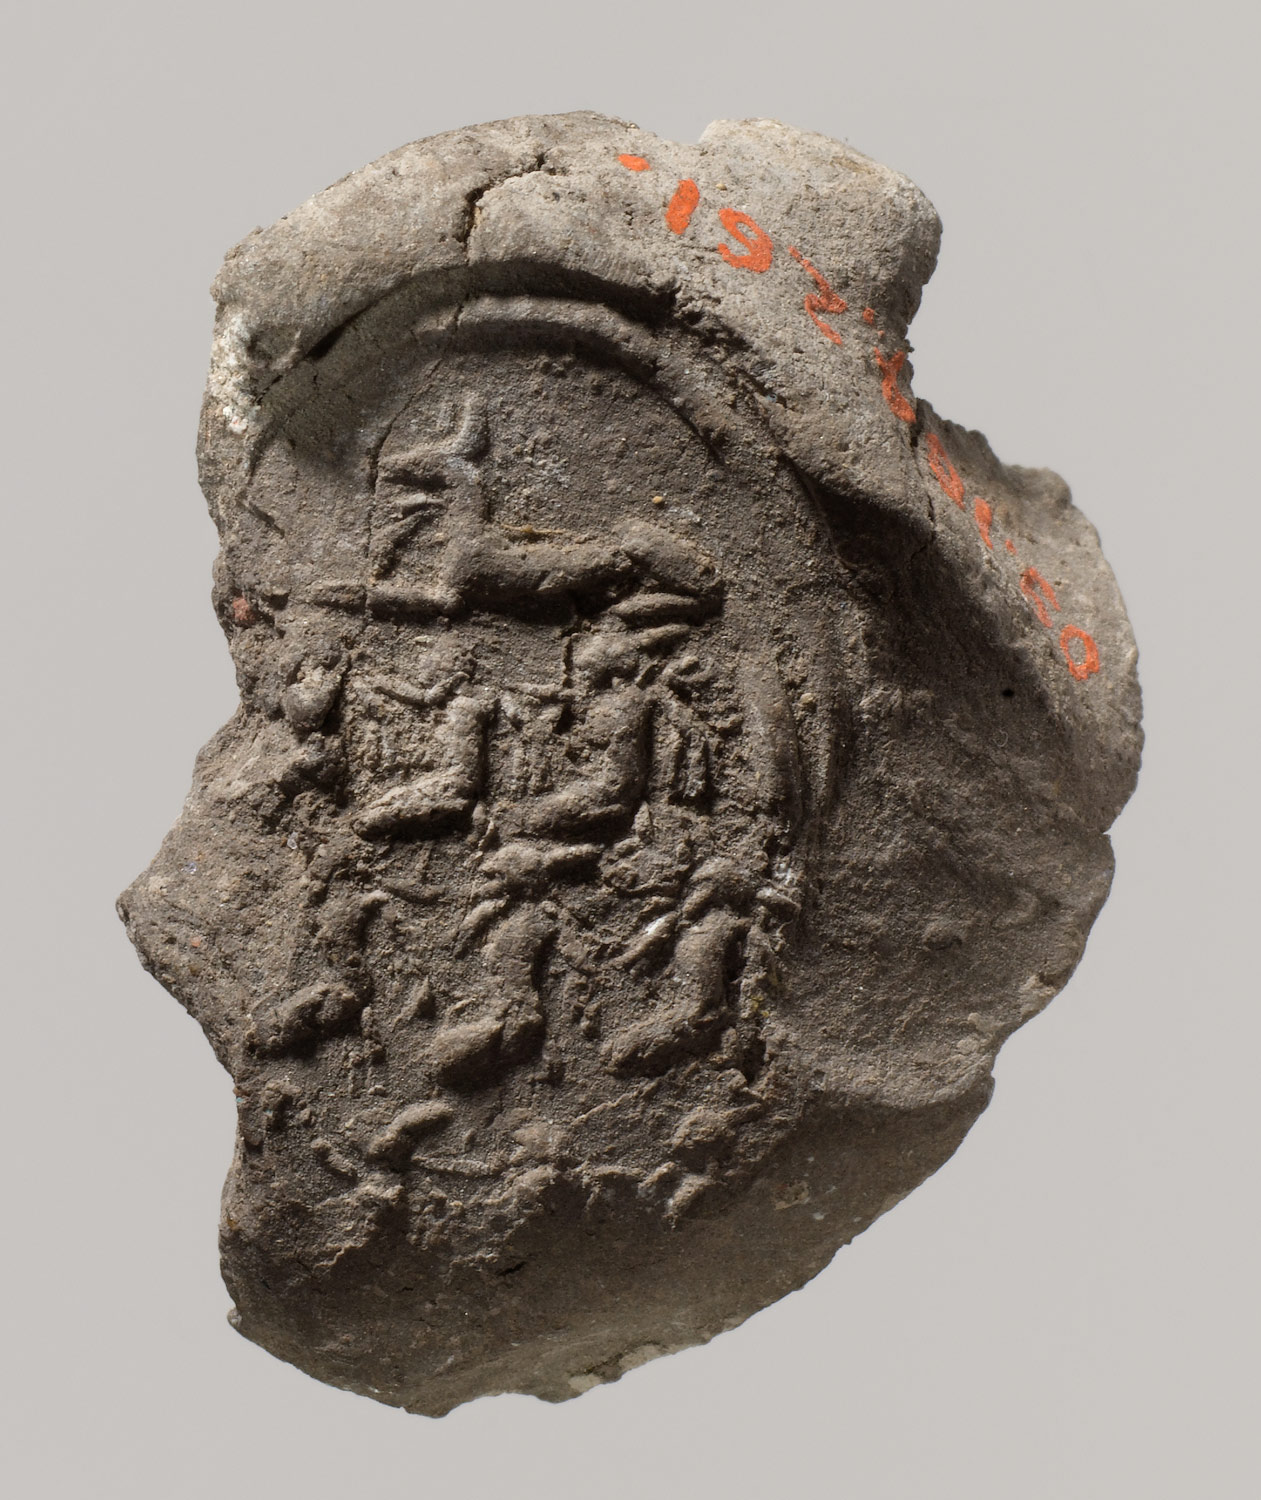 Fragmentary Impression of the Necropolis Seal from Tutankhamuns Embalming Cache